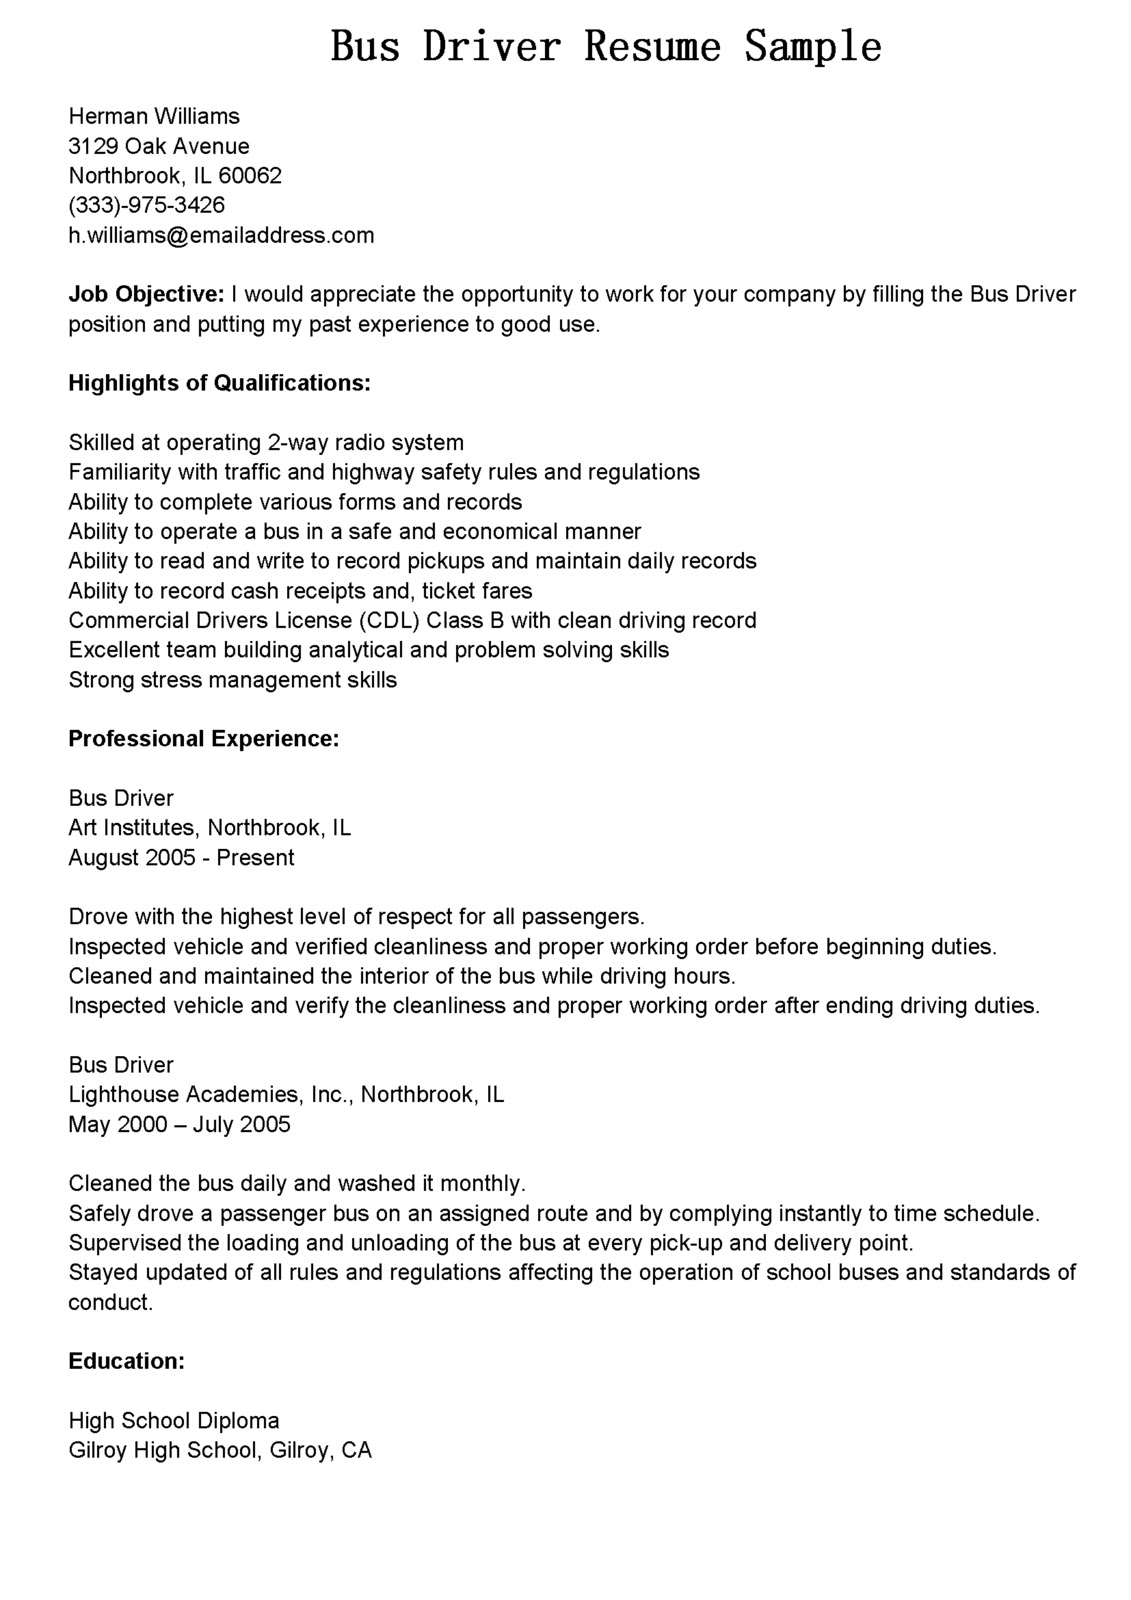 Admissions Coordinator Job Description Resume Emailing Cover